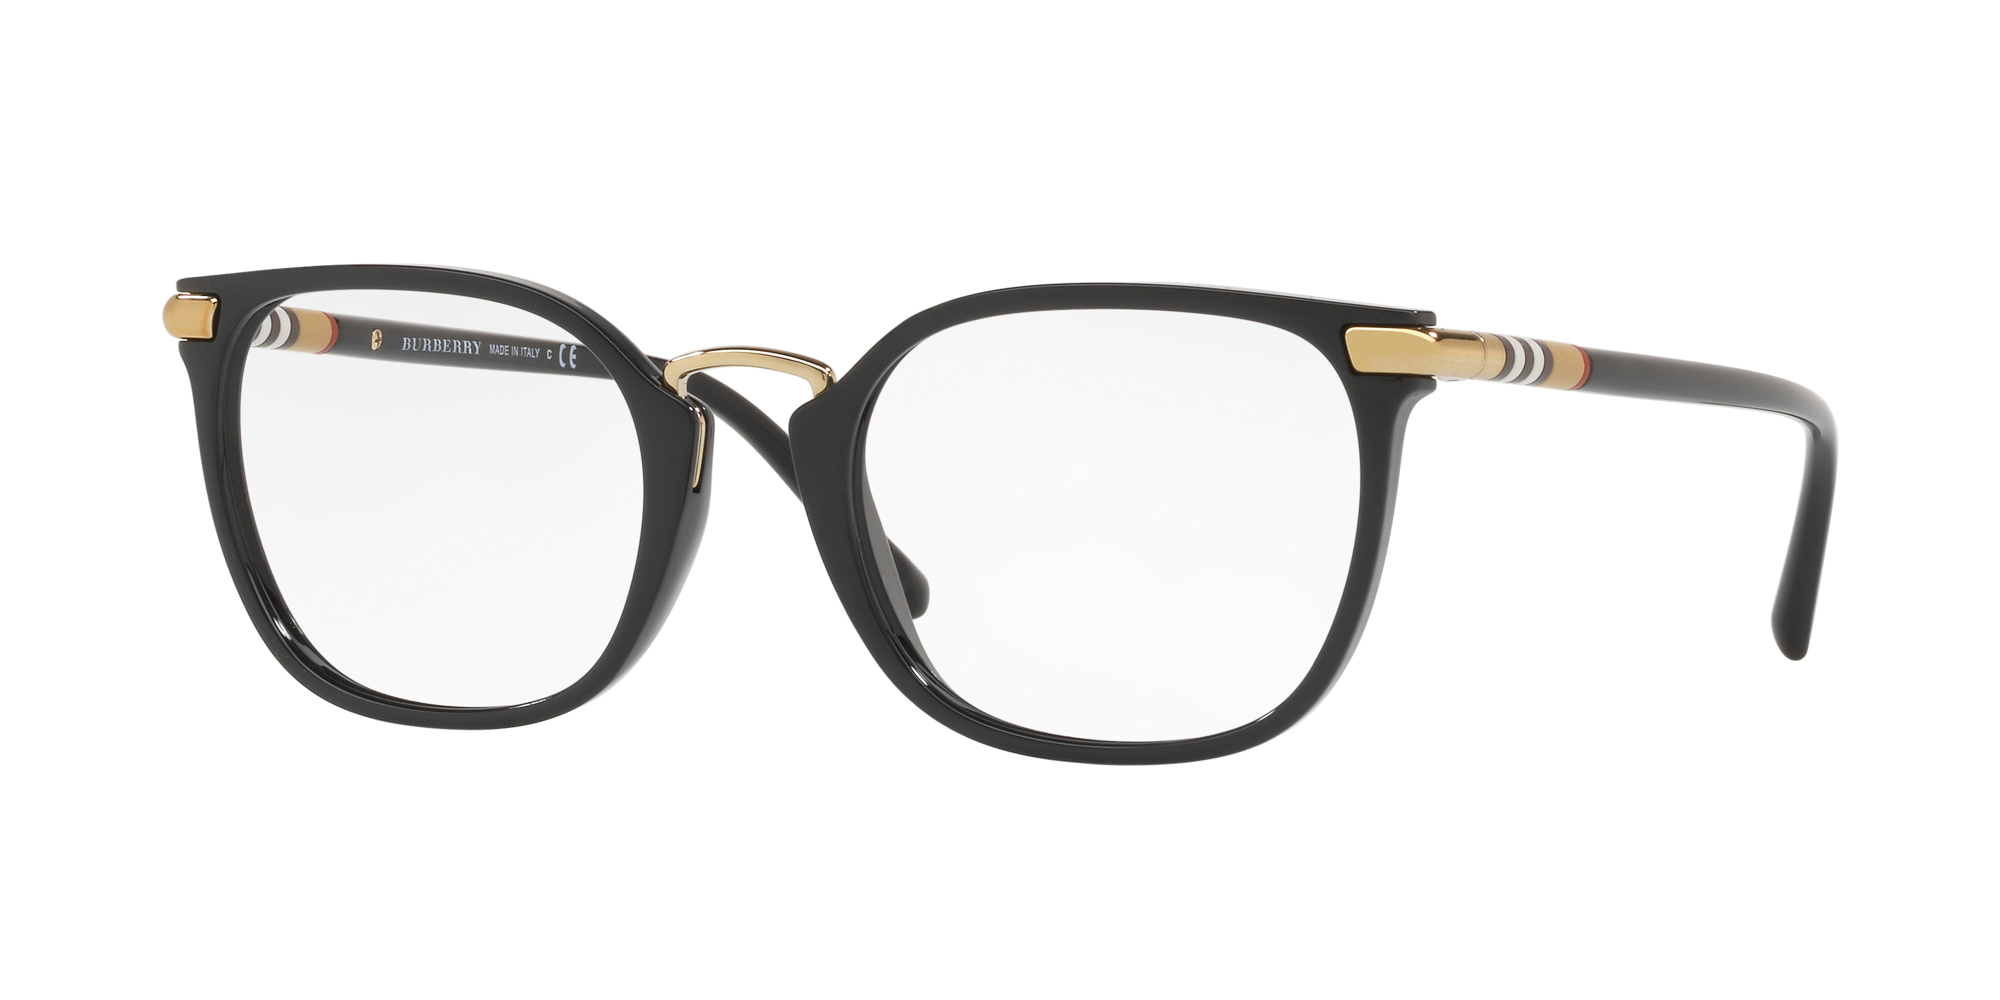 Burberry Brille 0BE2269523001 bei ROTTLER